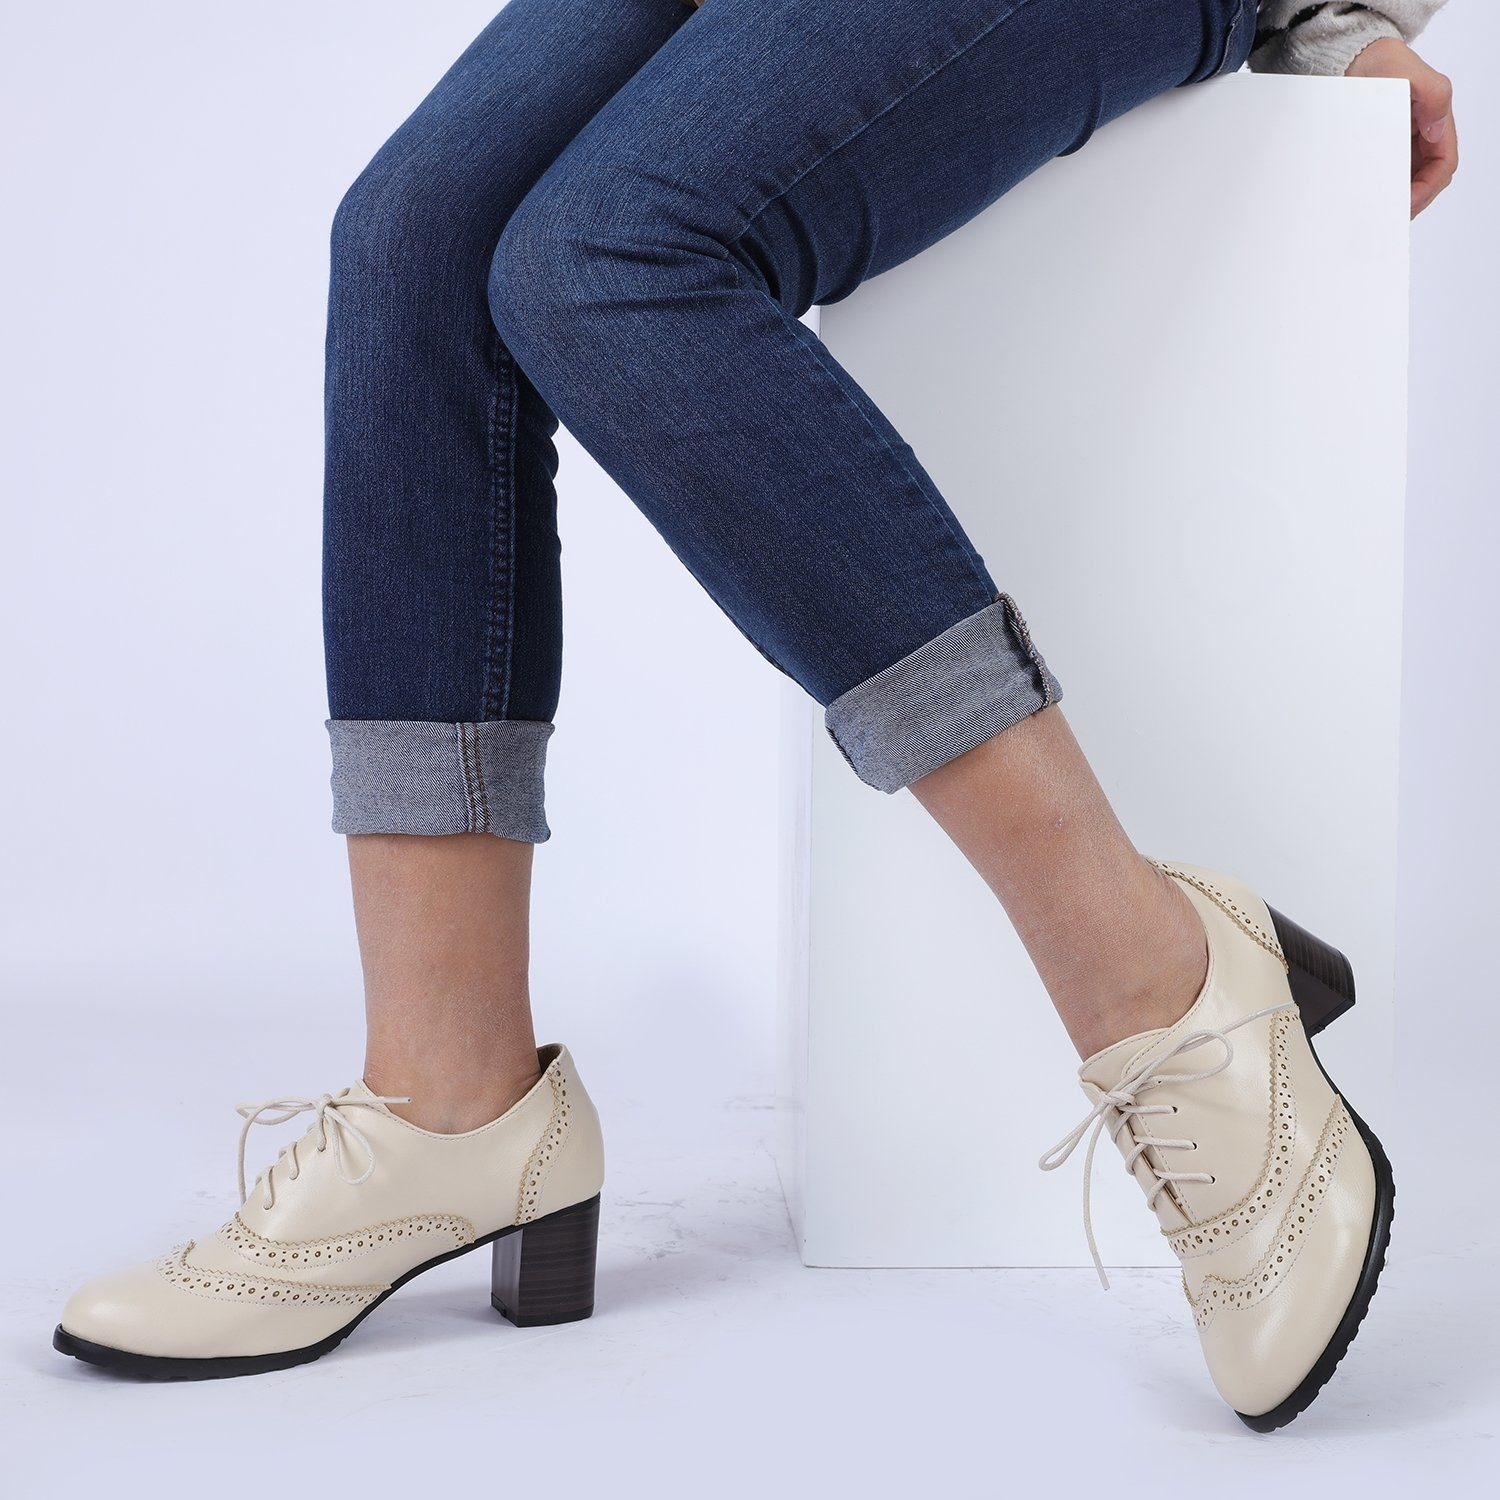 model wears oxford shoes in beige